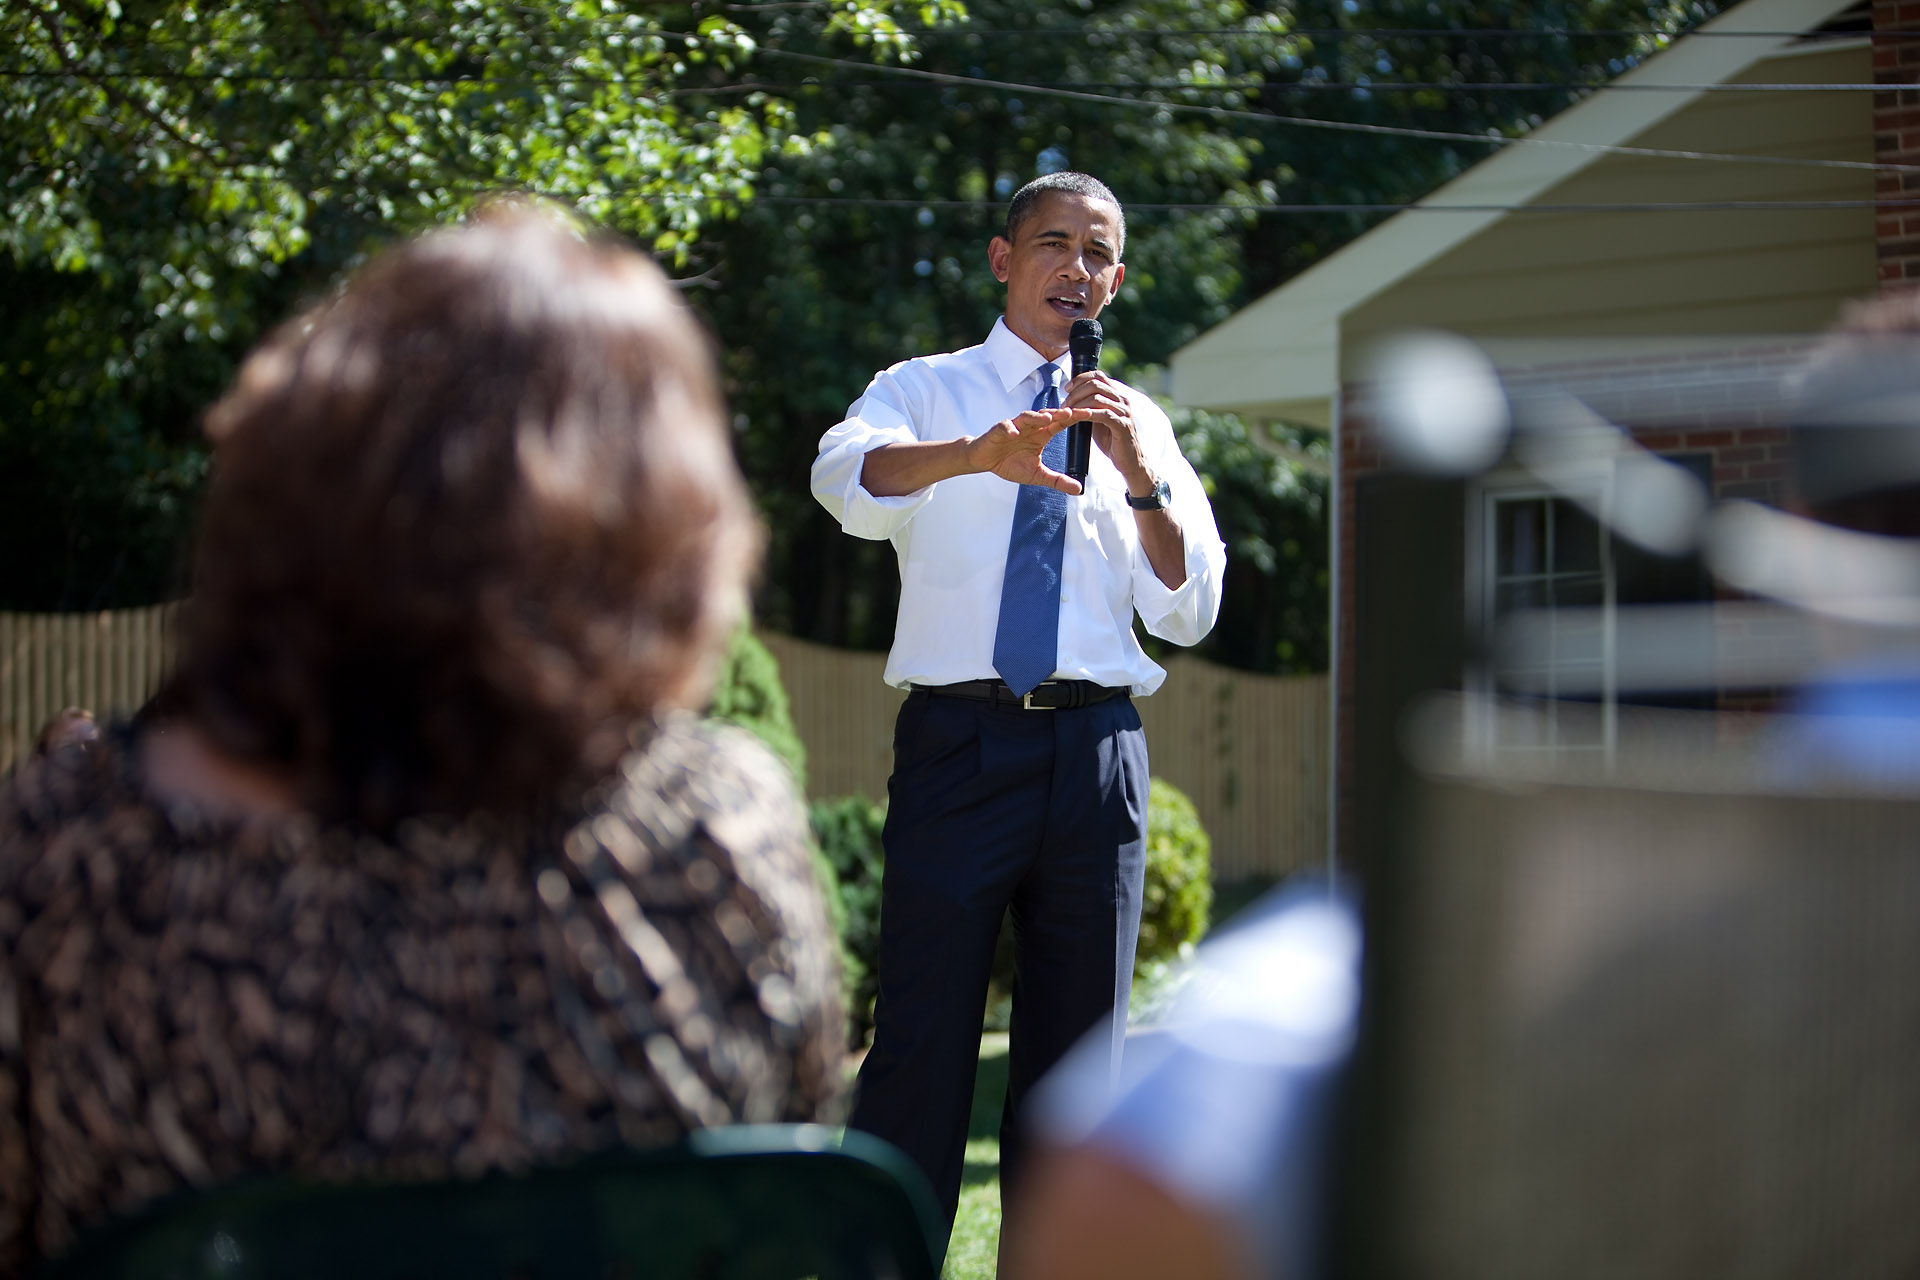 President Barack Obama Responds to a Question During a Discussion on the Economy with Area Families in the Backyard of the John Nicholas and Nicole Armstrong Family Home in Fairfax, Virginia